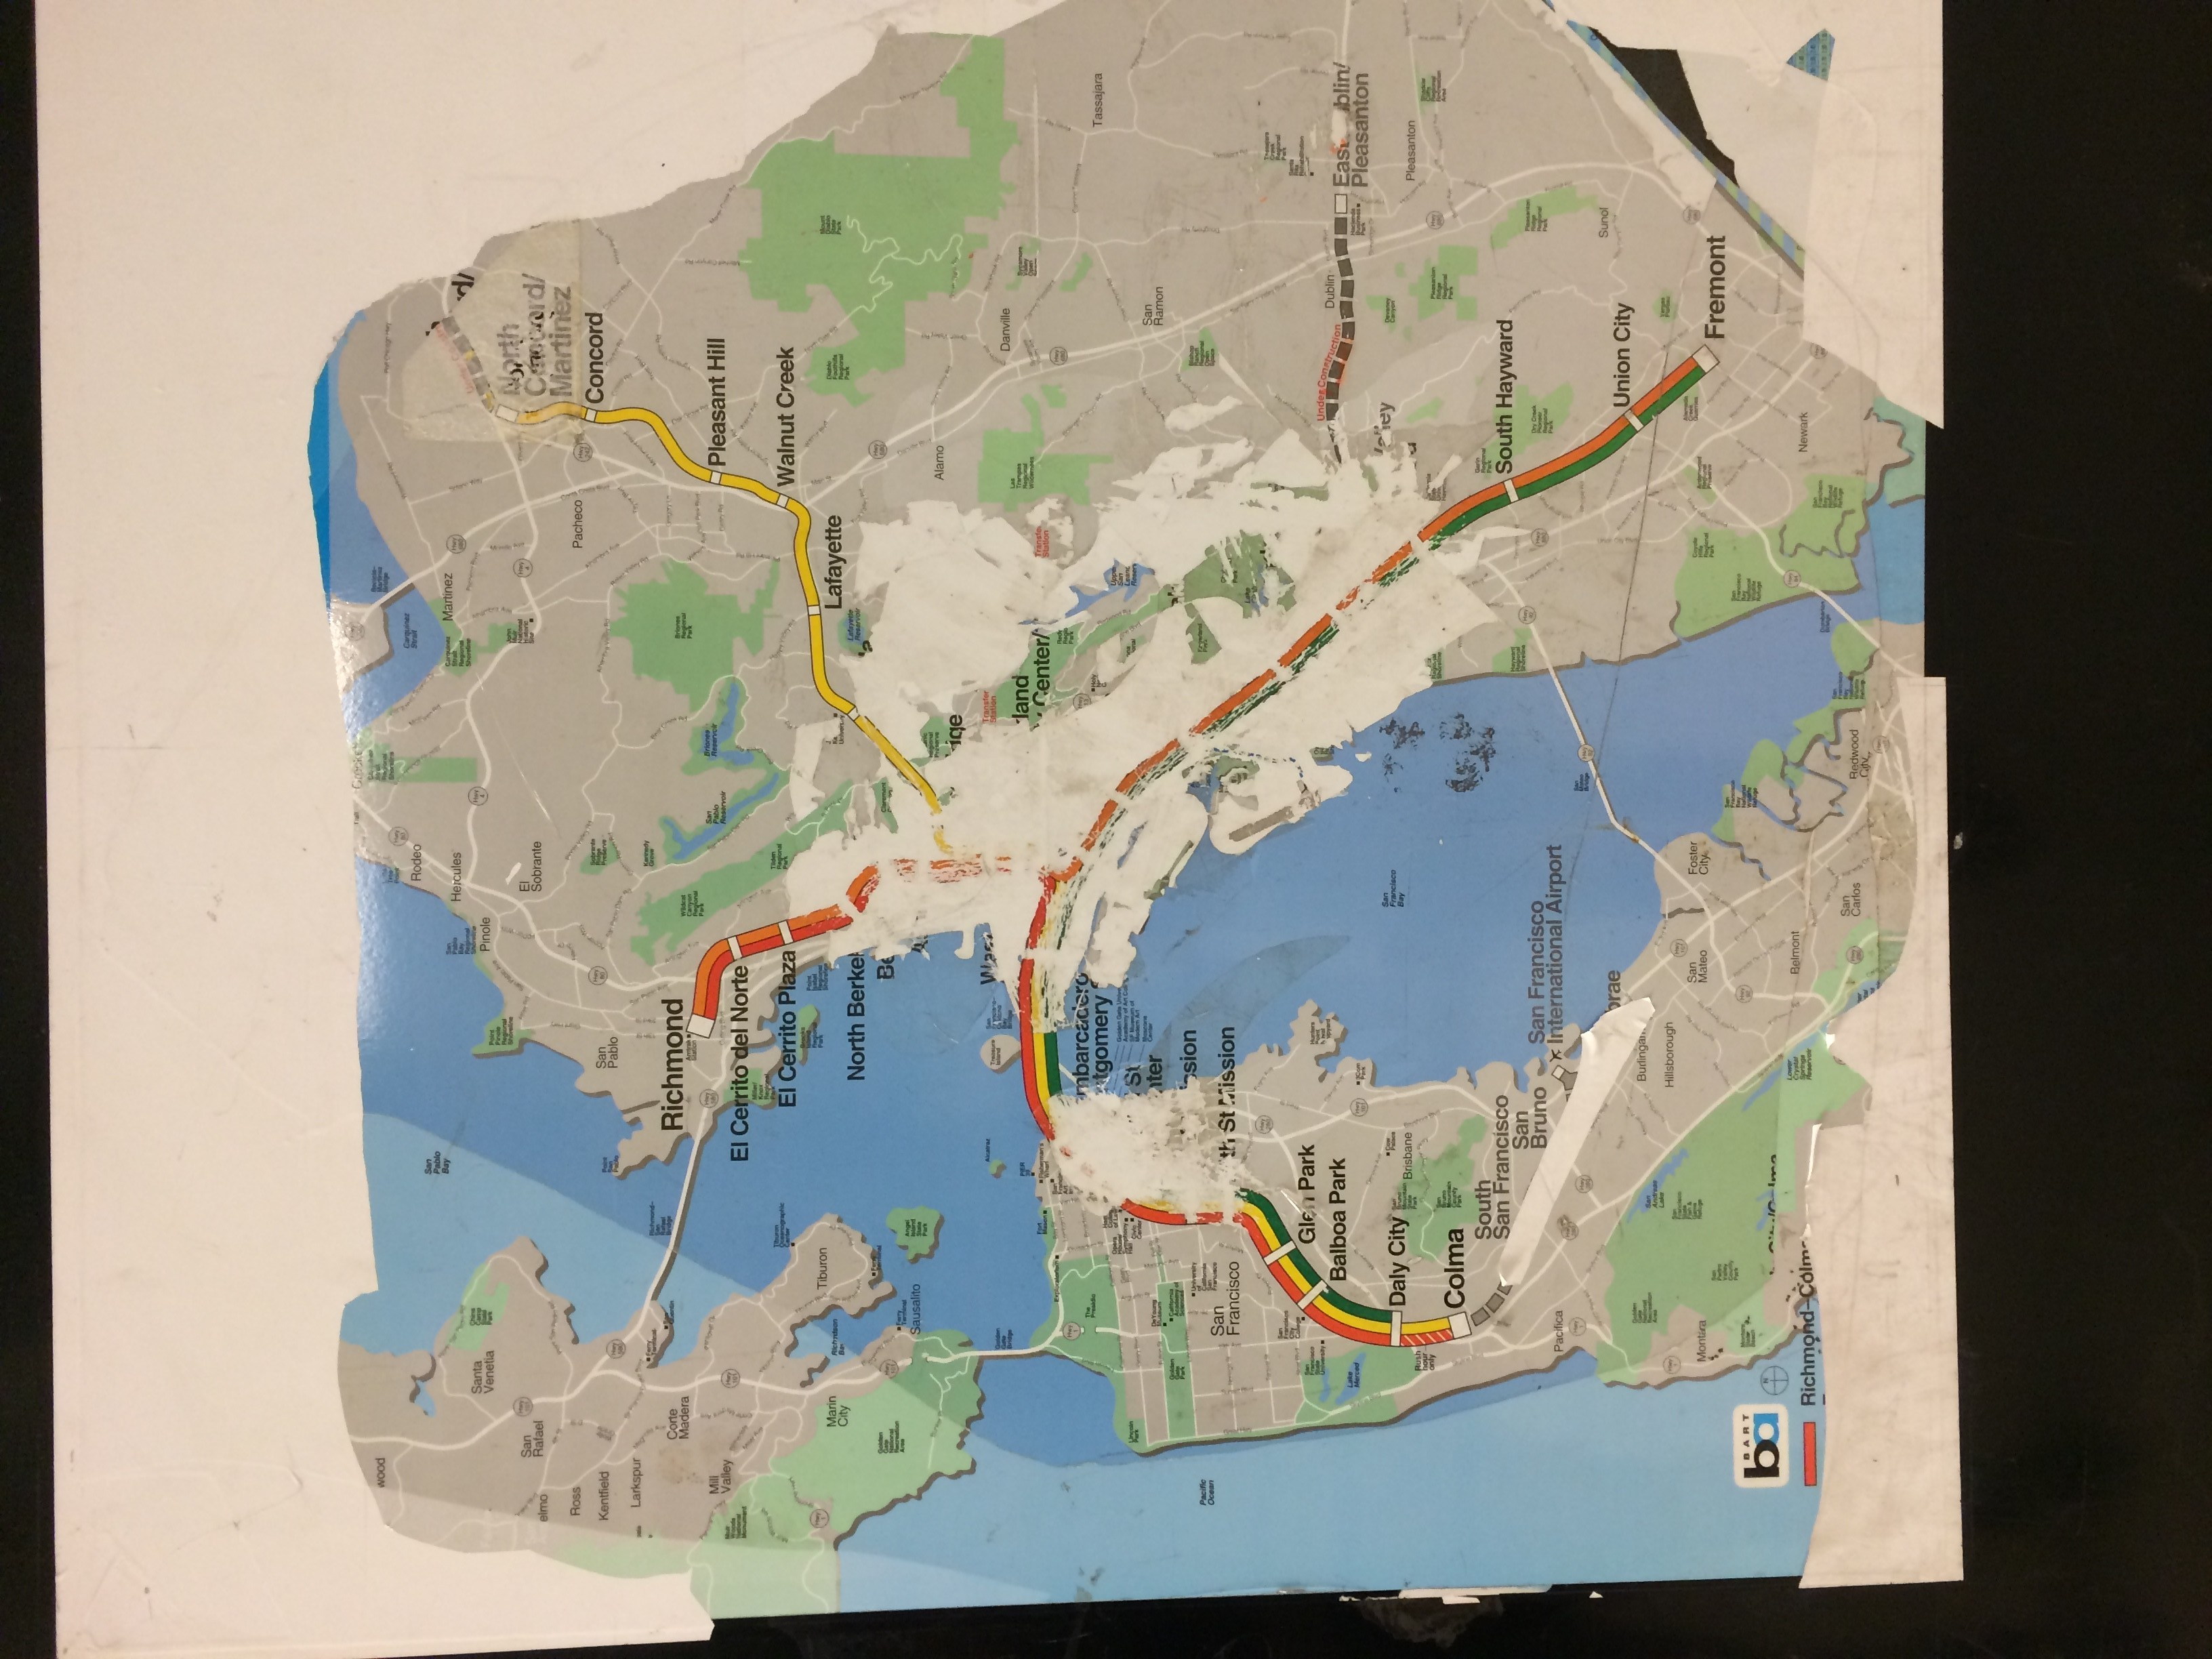 San Francisco Map Of Things To Do%0A BART map from ye nottoodistant dayes